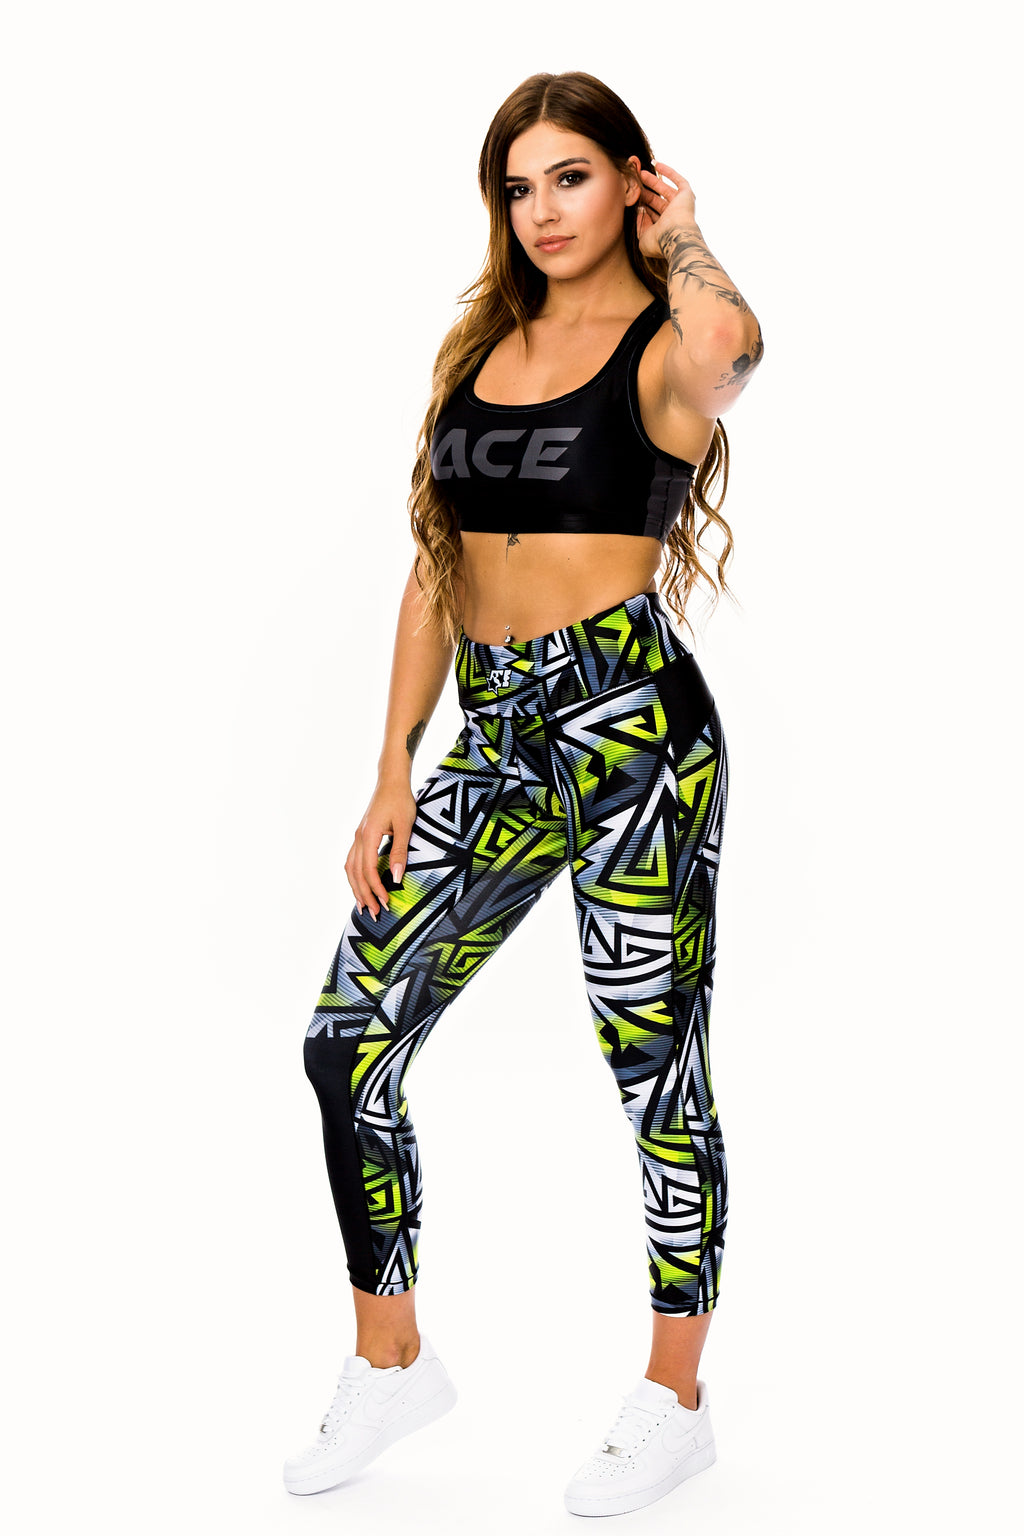 WOMENS LEGGINGS - FIREBLADE - ACEPERFORMANCE